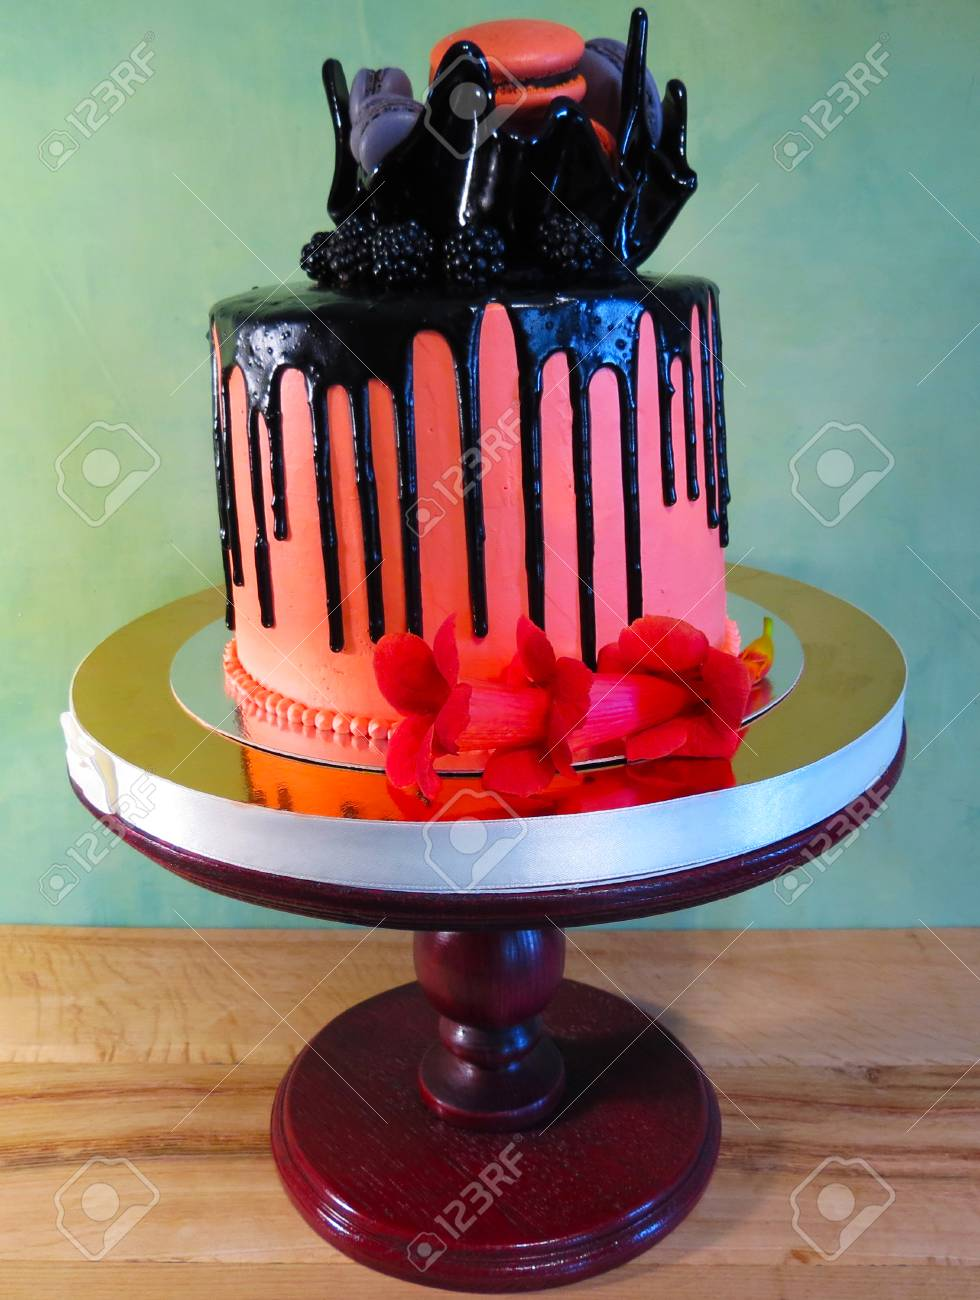 Astonishing Beautiful Birthday Cake Orange With Black Stains On A Green Personalised Birthday Cards Epsylily Jamesorg